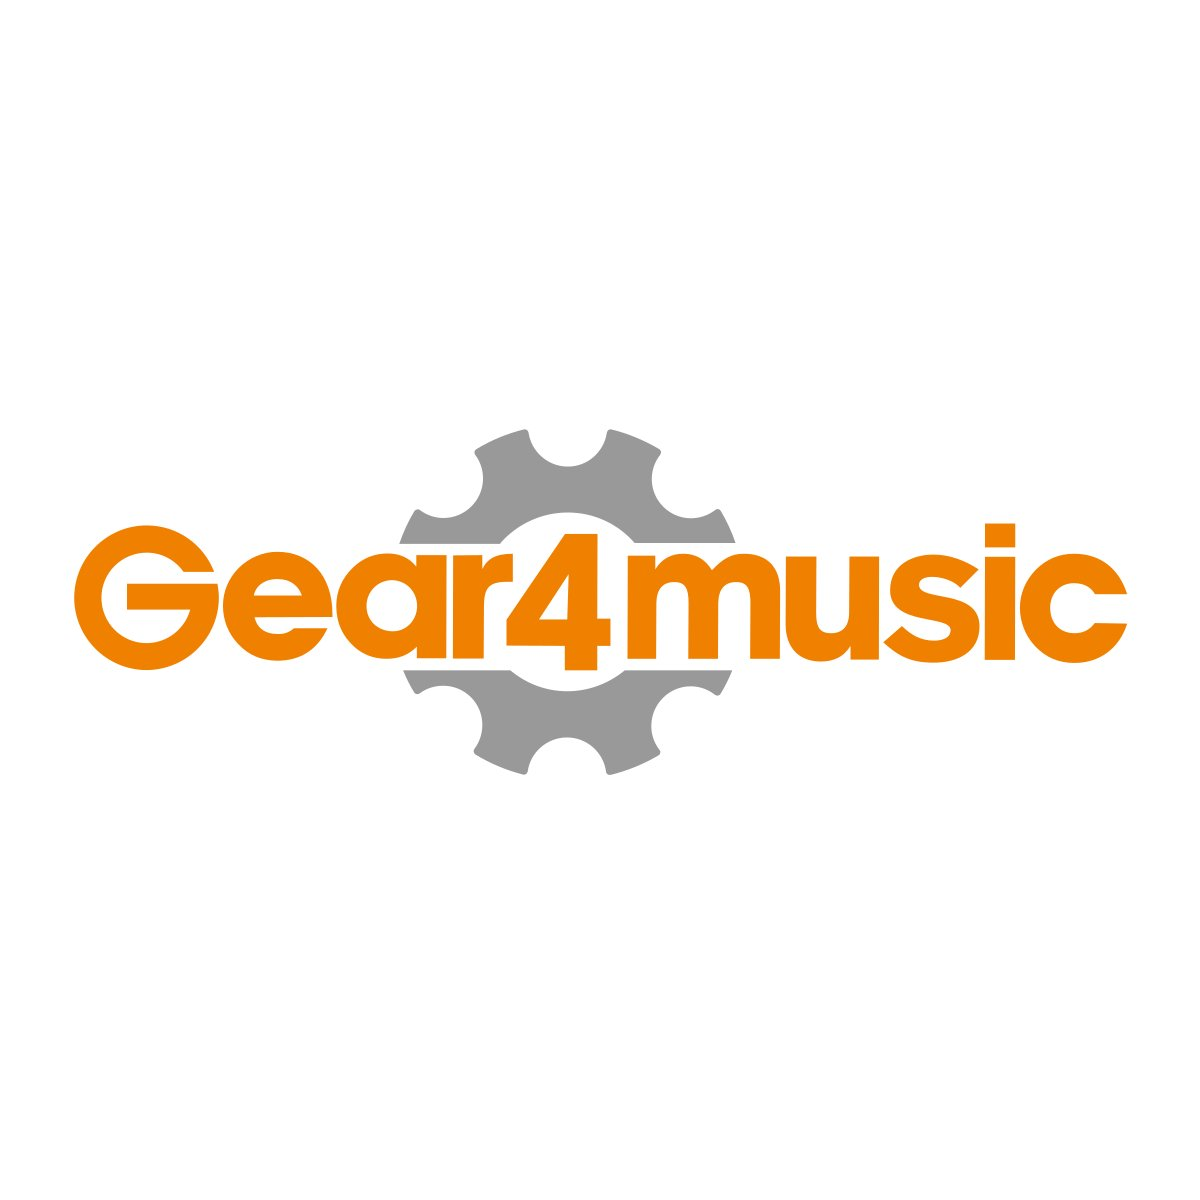 Coppergate mellemniveau baryton fra Gear4music